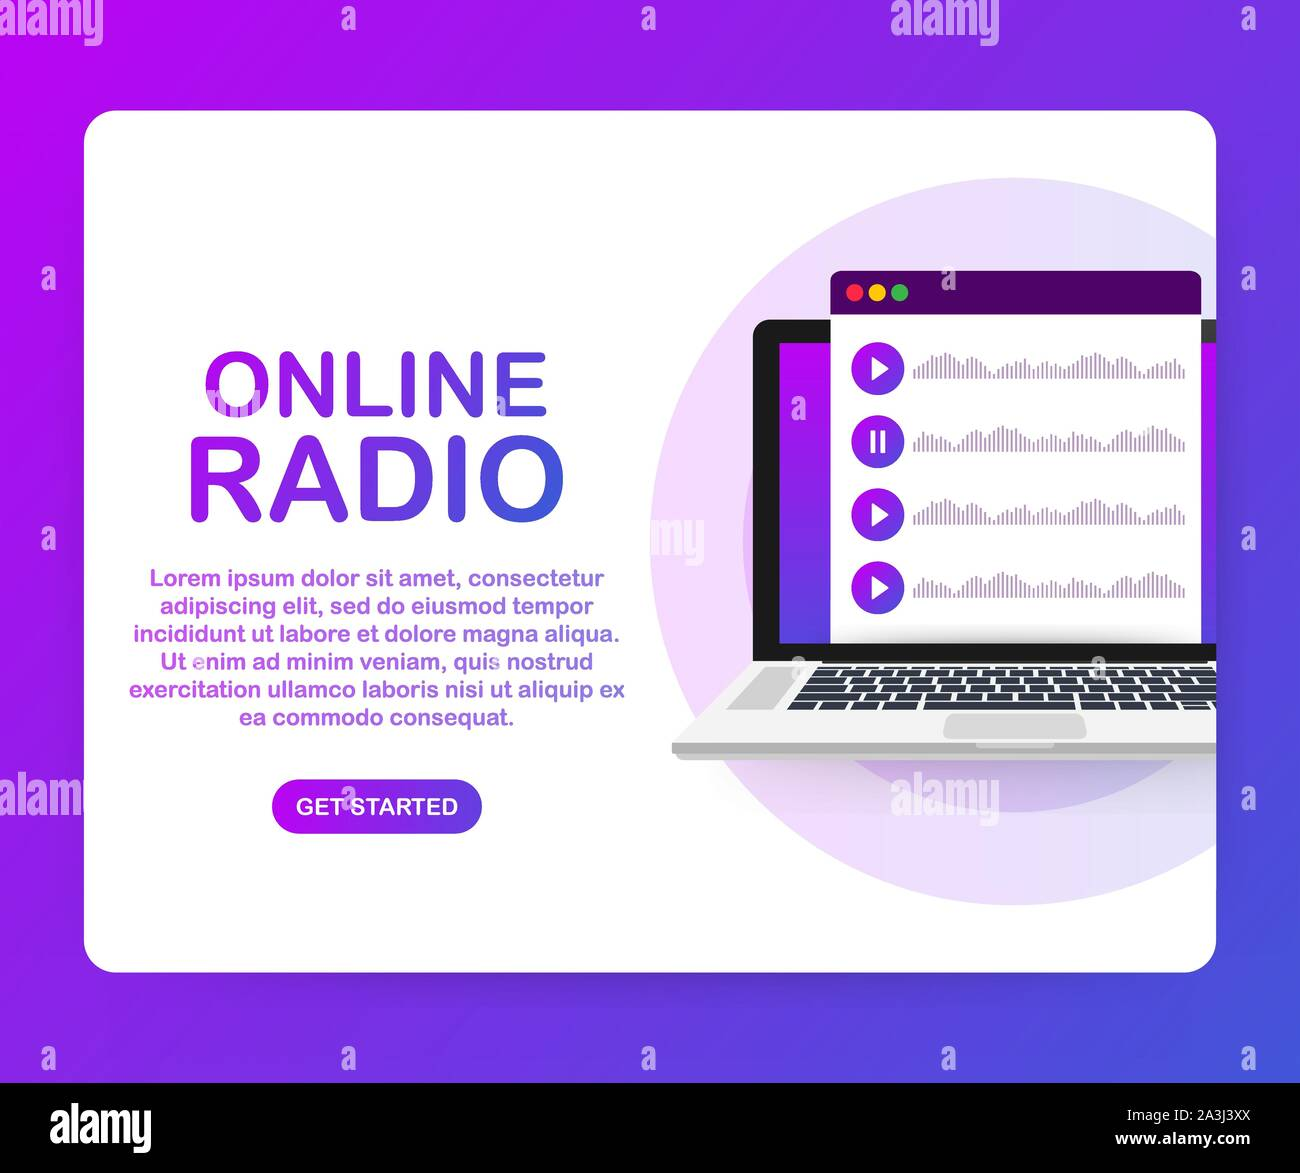 Playlists | Online Streaming Internet Radio Songs and Tracks